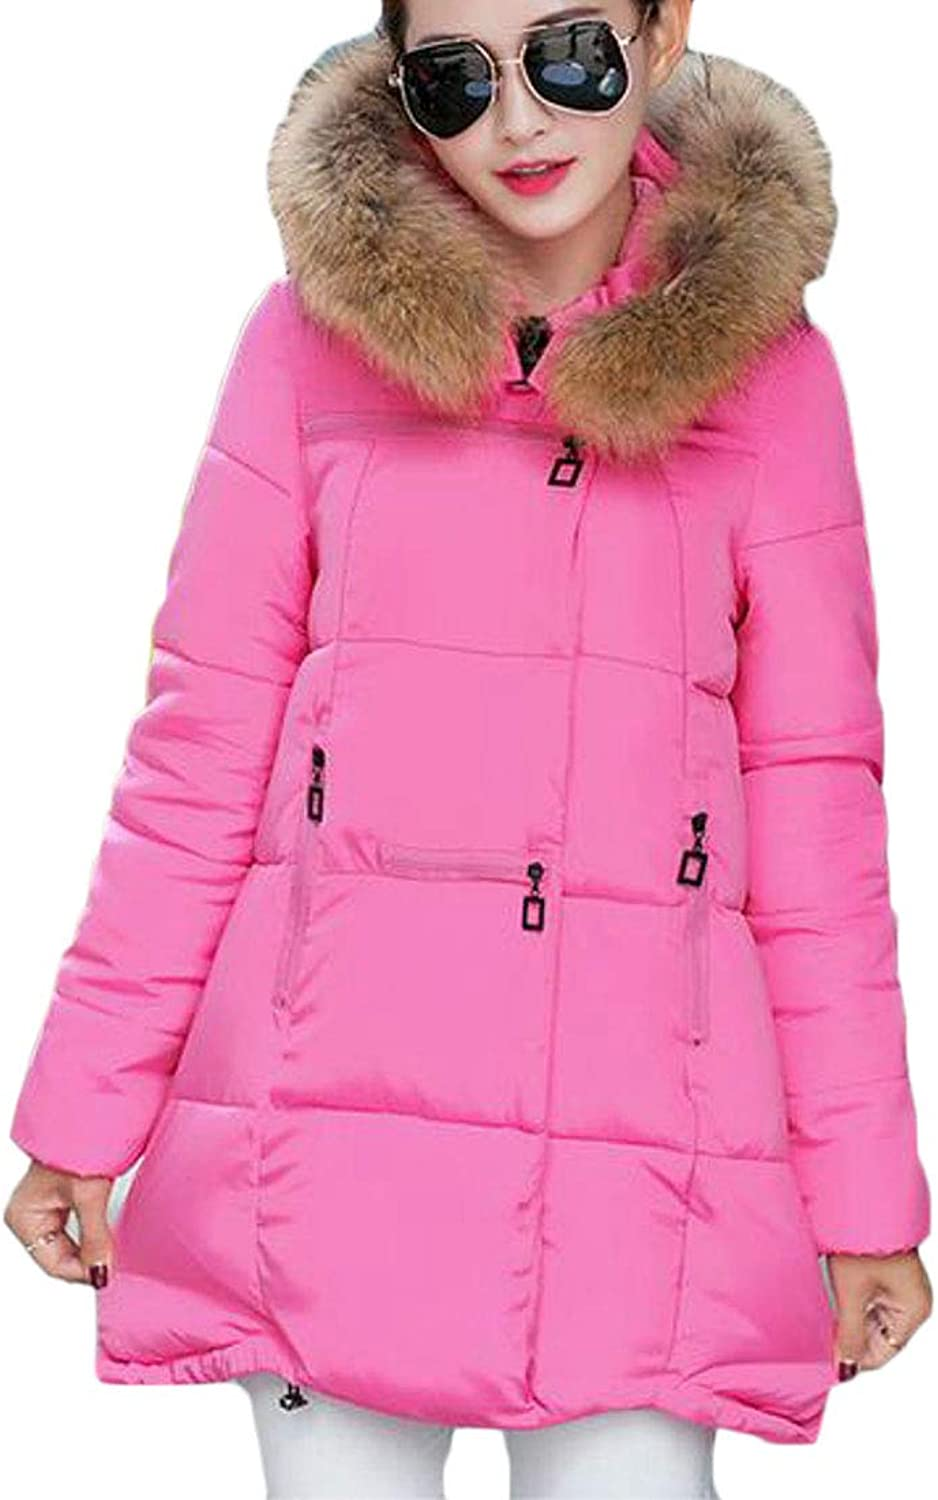 Suncolor8 Womens ALine Faux Fur Hoodie Winter Plus Size Down Quilted Jacket Coat Outerwear